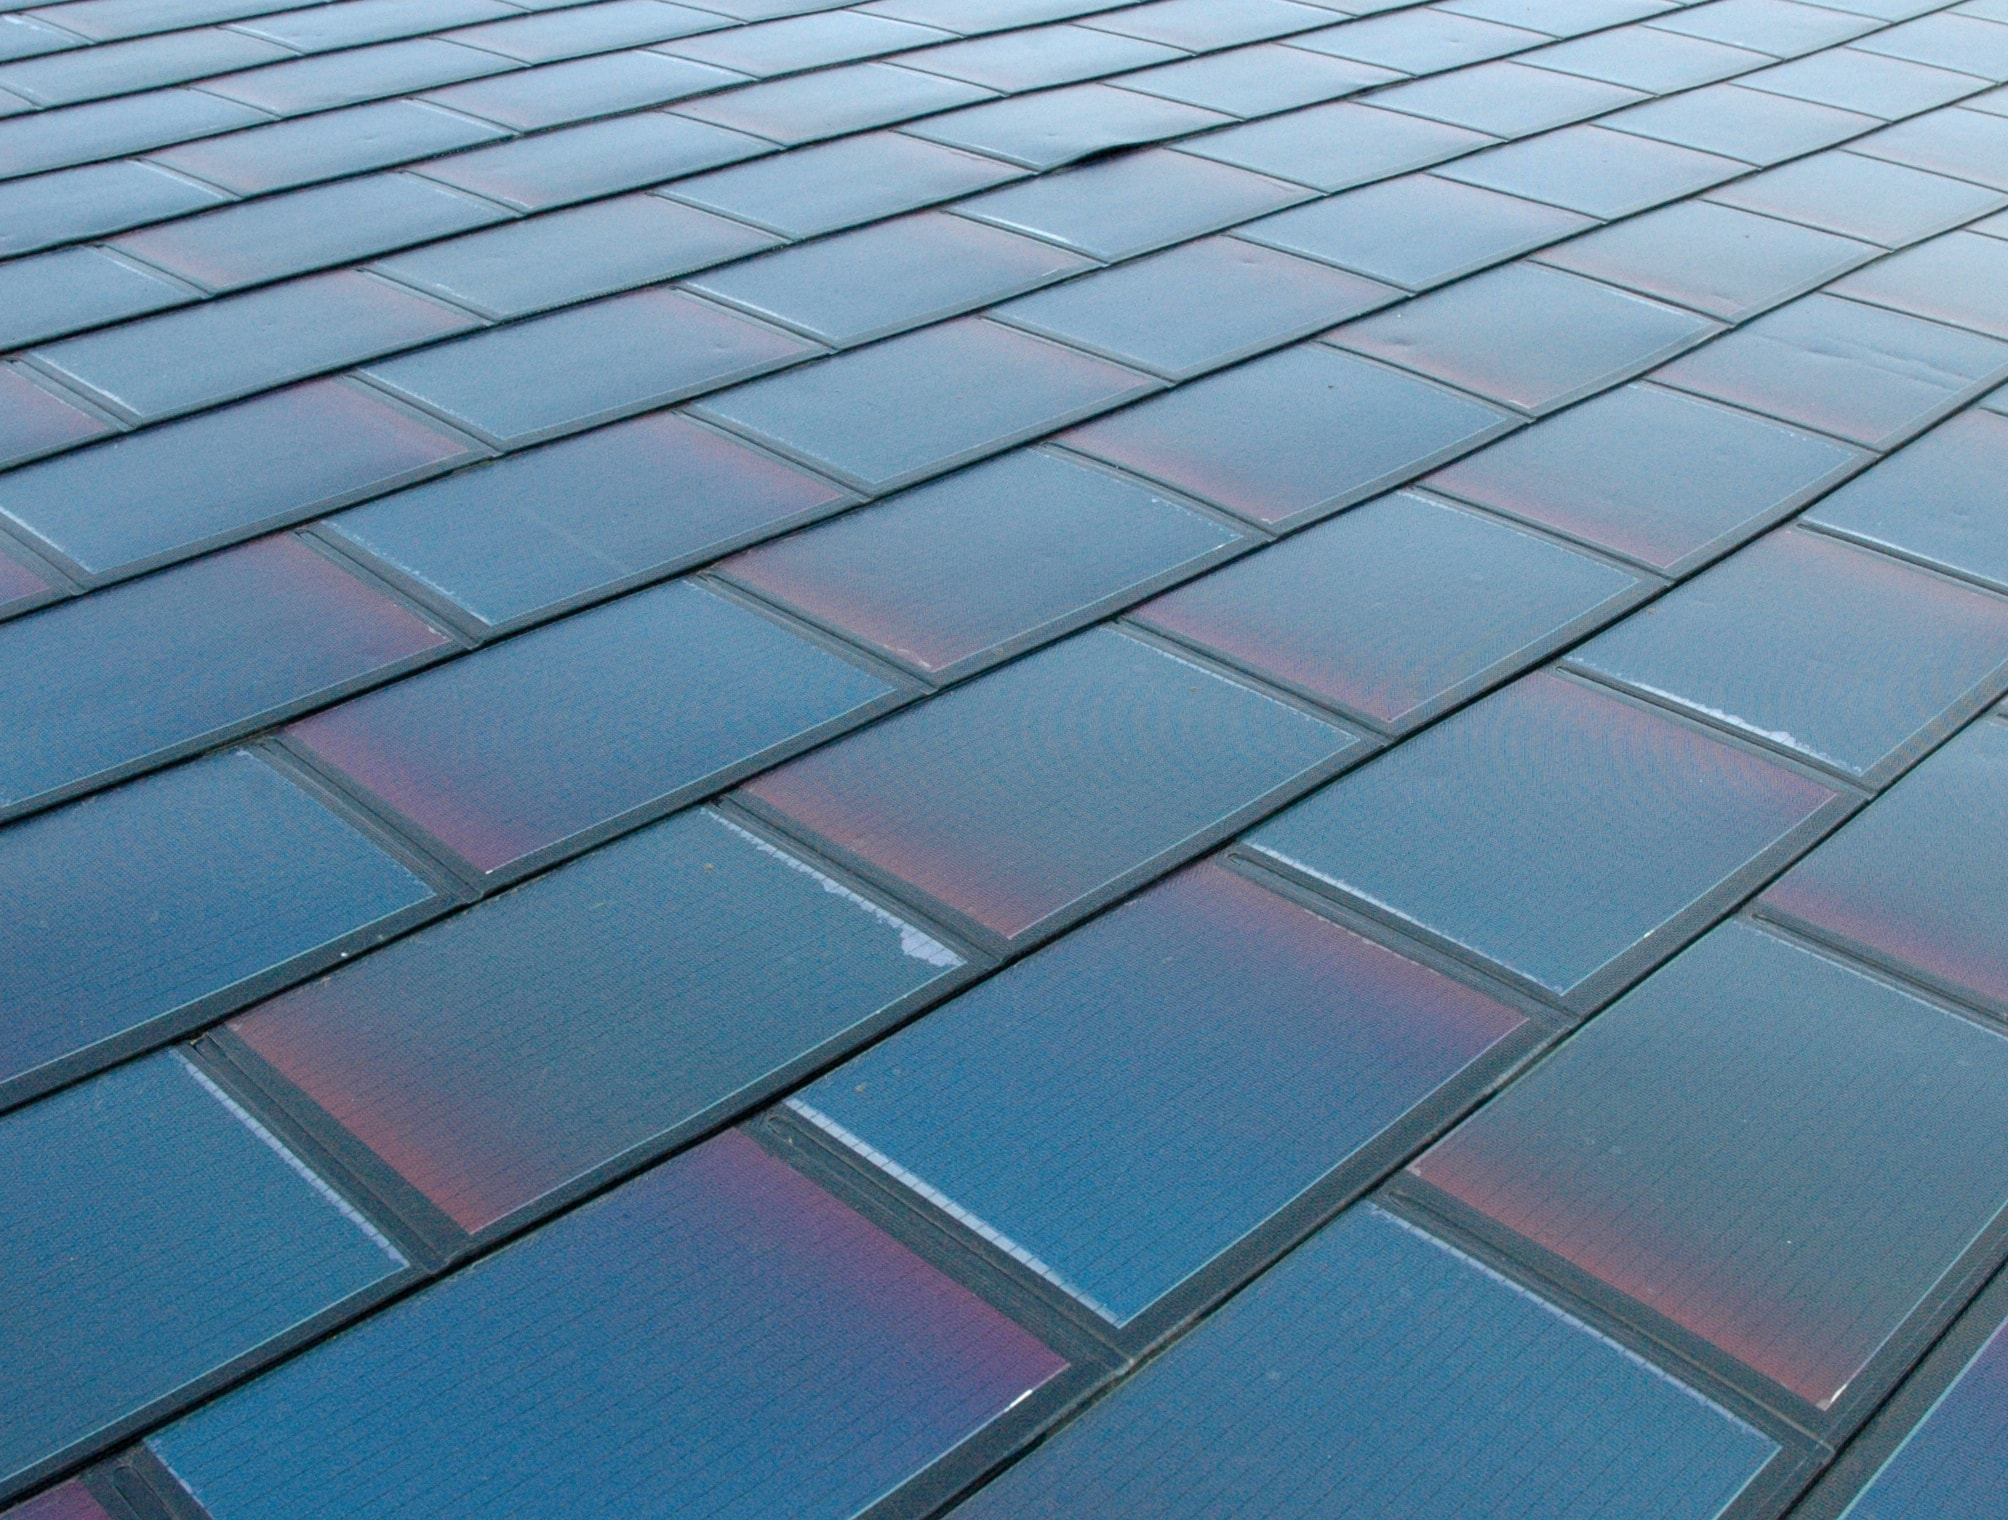 Elon Musk Leads Effort To Build House Roofs Entirely Out